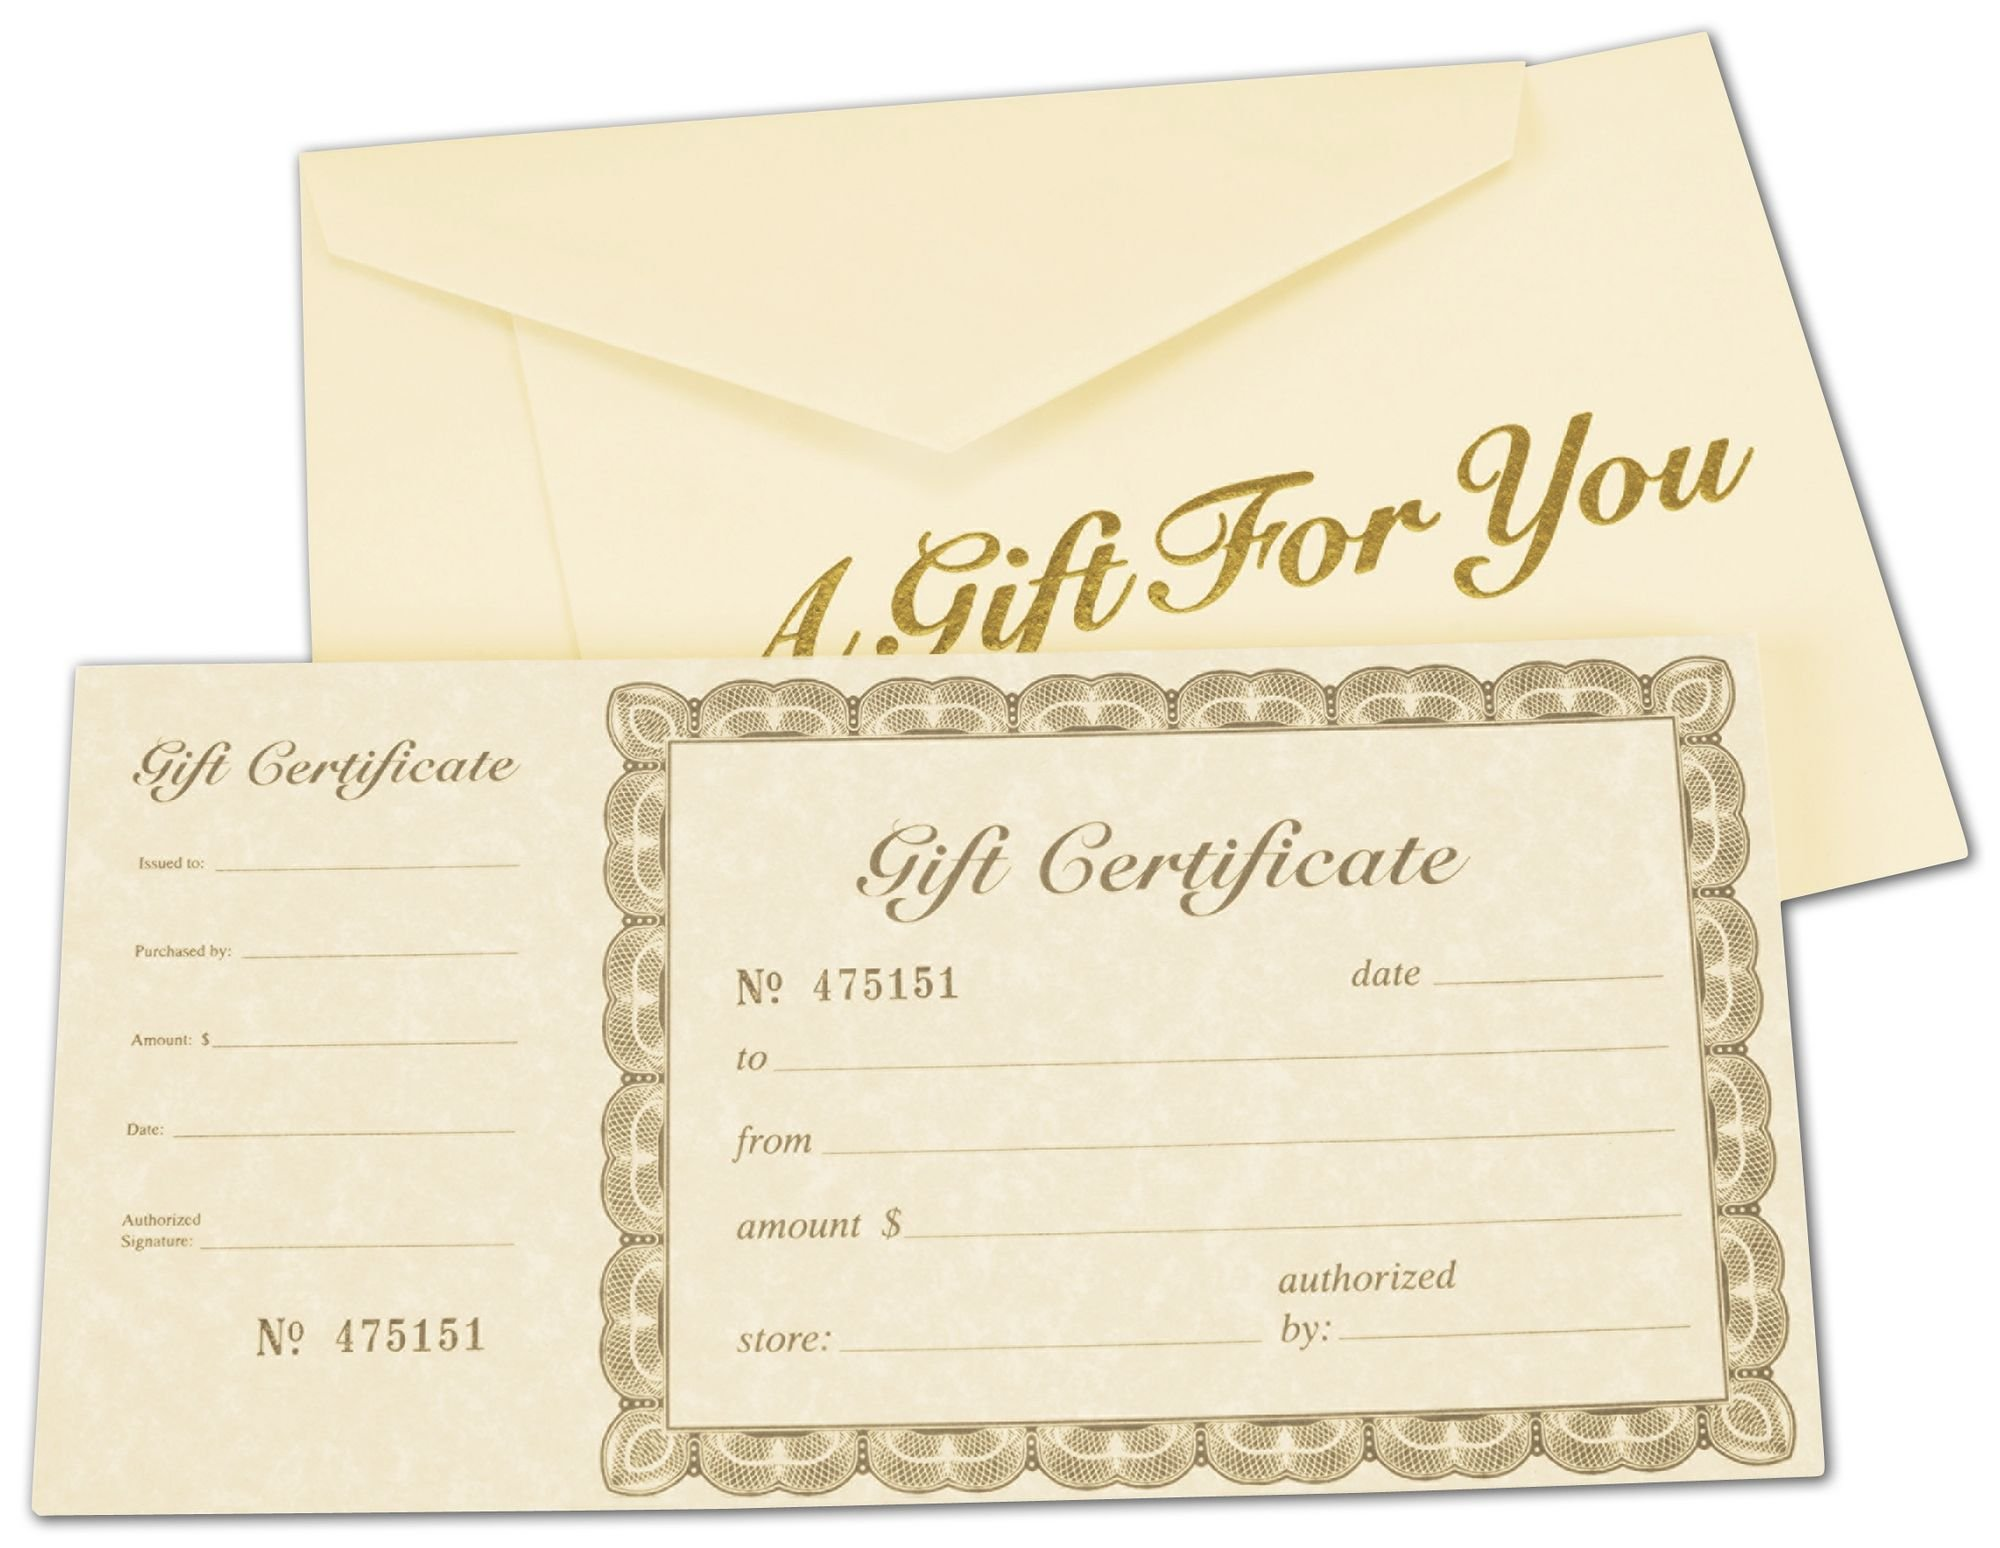 Ivory Gift Certificates, Gold, 8 3/8 x 4 1/8'' (100 Gift Certificates) - BOWS-503-00